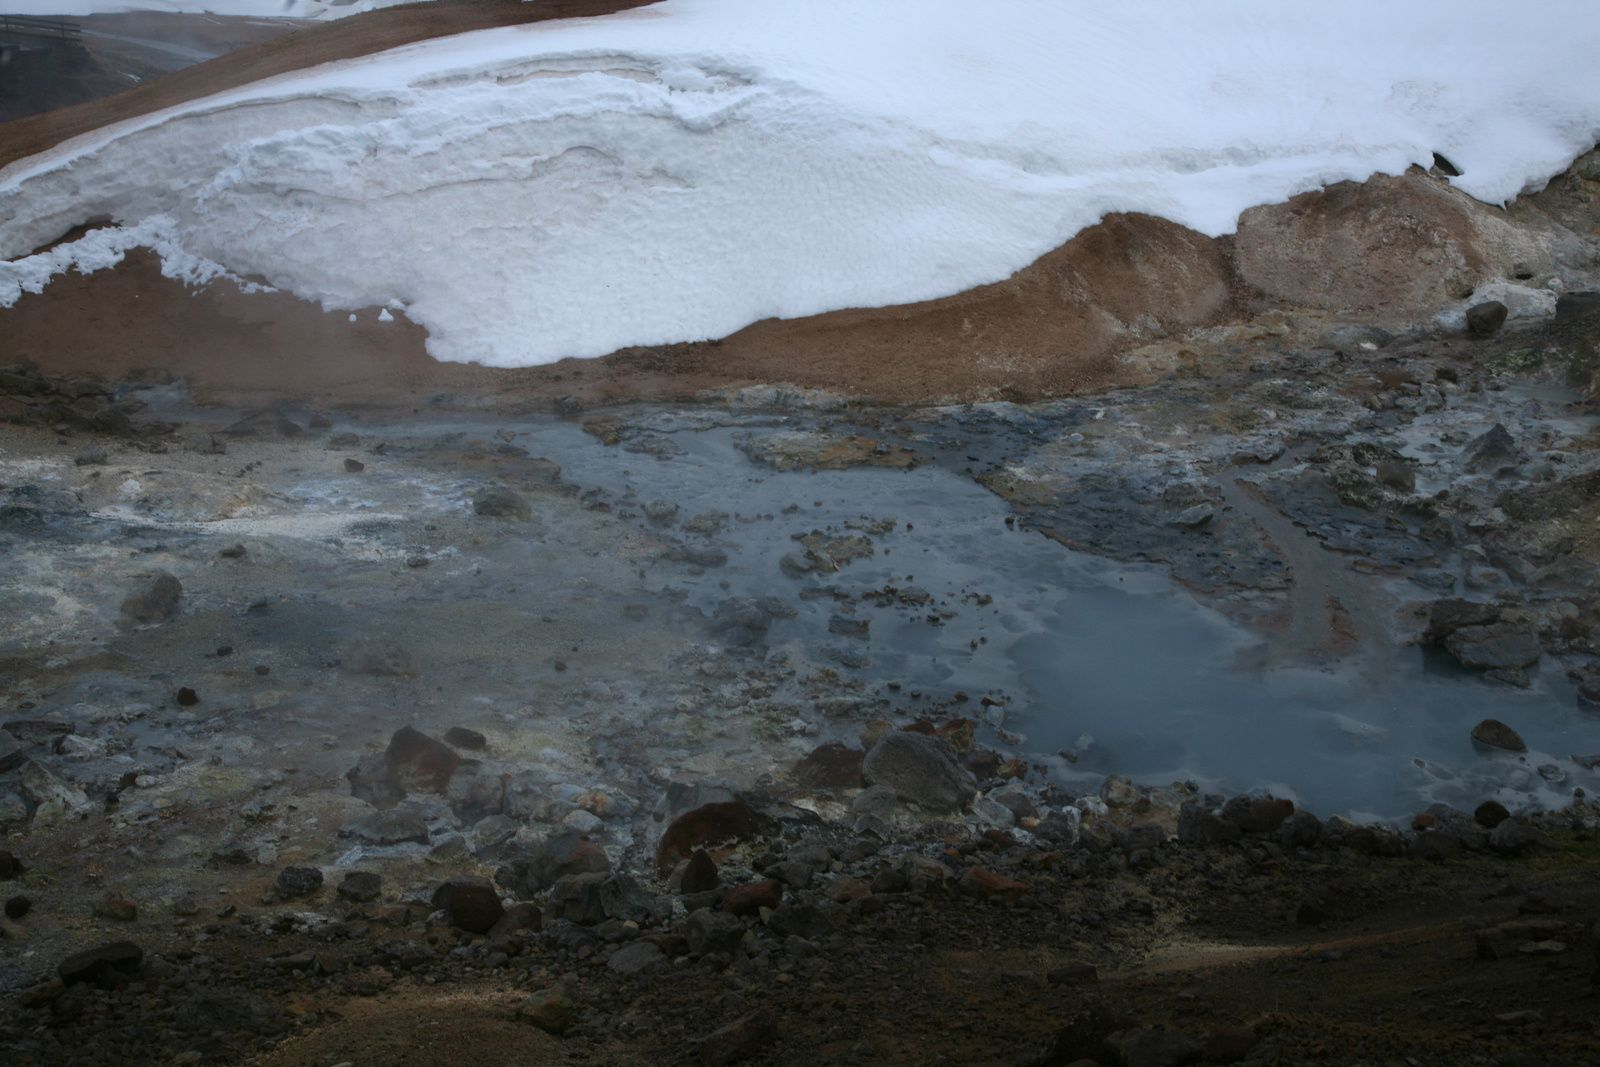 The geothermal field Krísuvík-Seltun - photo © 2015 Bernard Duyck